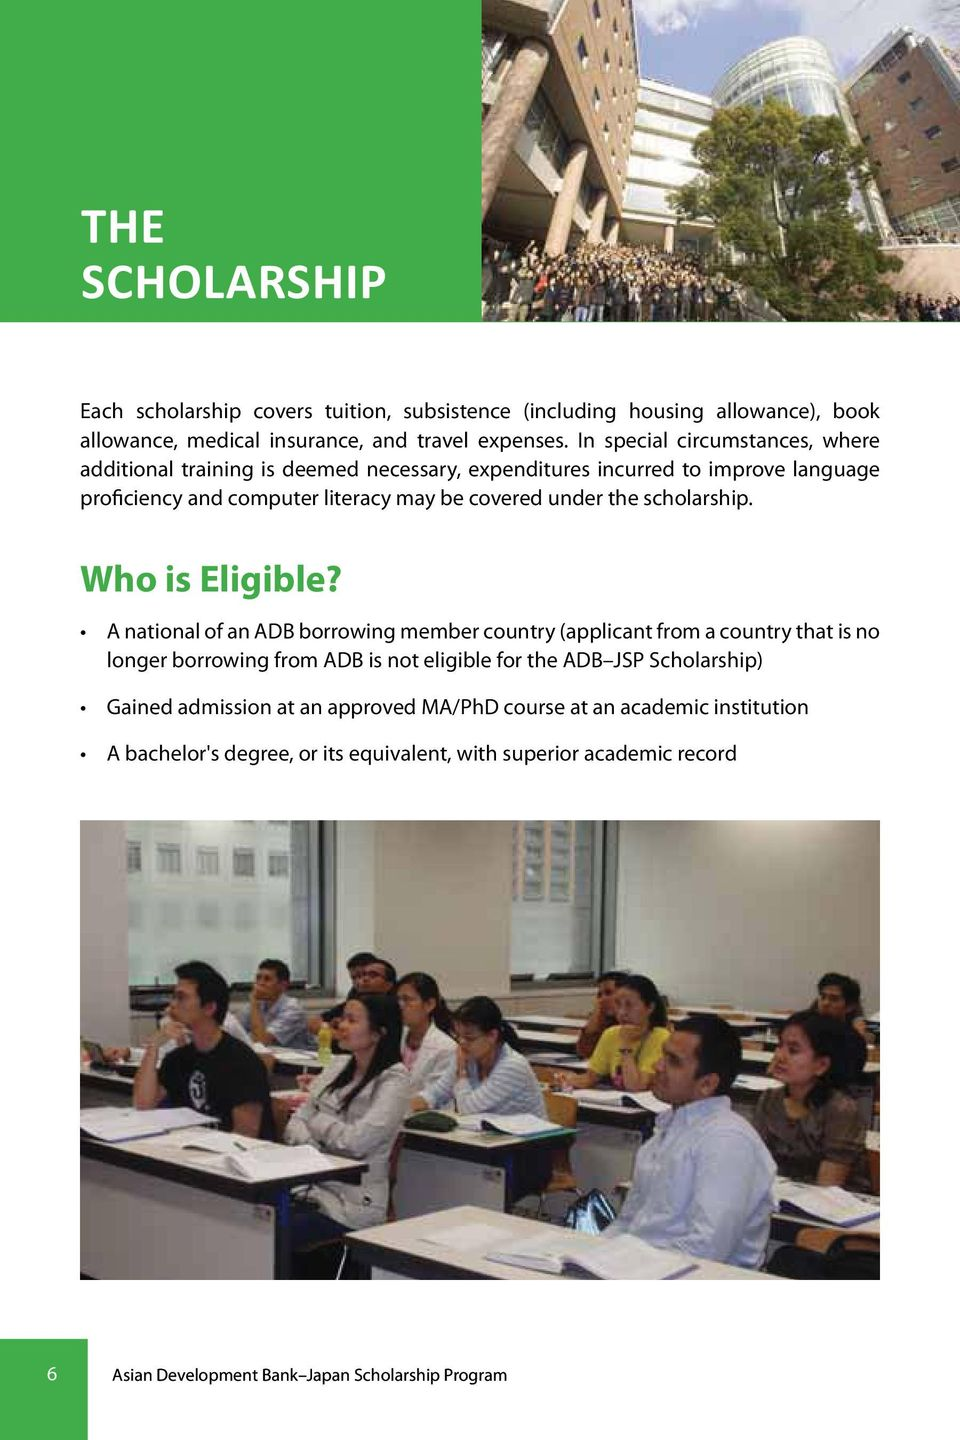 scholarship. Who is Eligible?